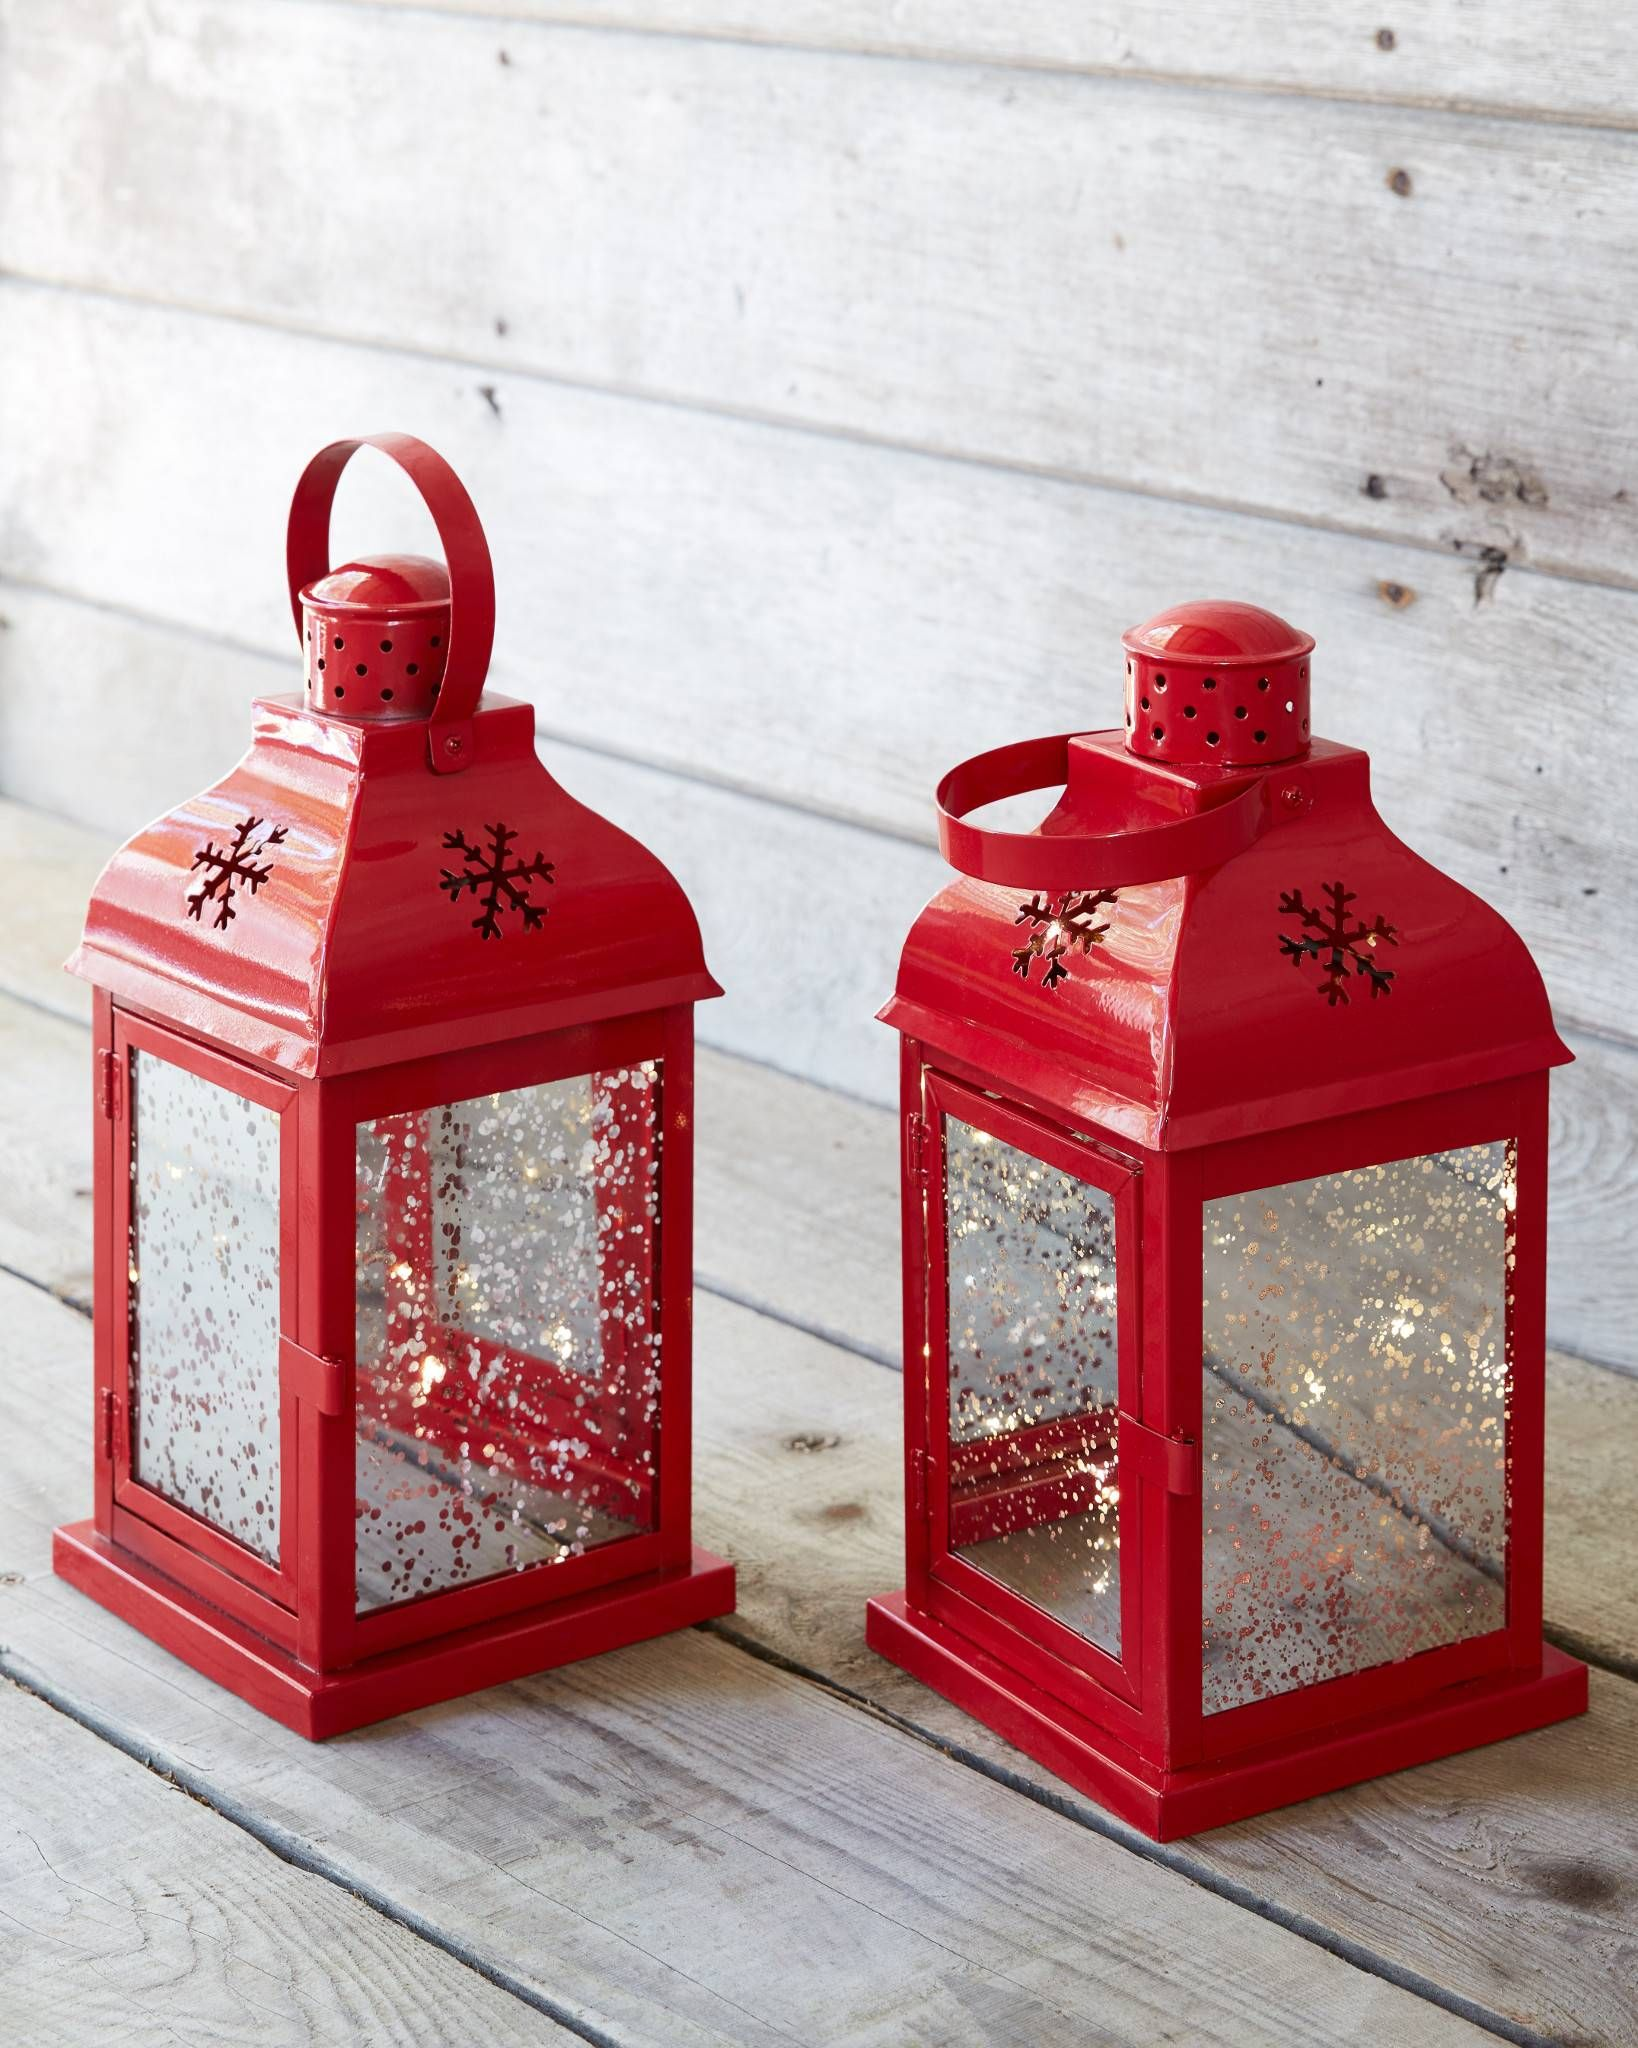 Brighten Up Your Pathways And Entryways This Holiday Season Outdoor Christmas Decorations Lights Decorating With Christmas Lights Outdoor Christmas Decorations